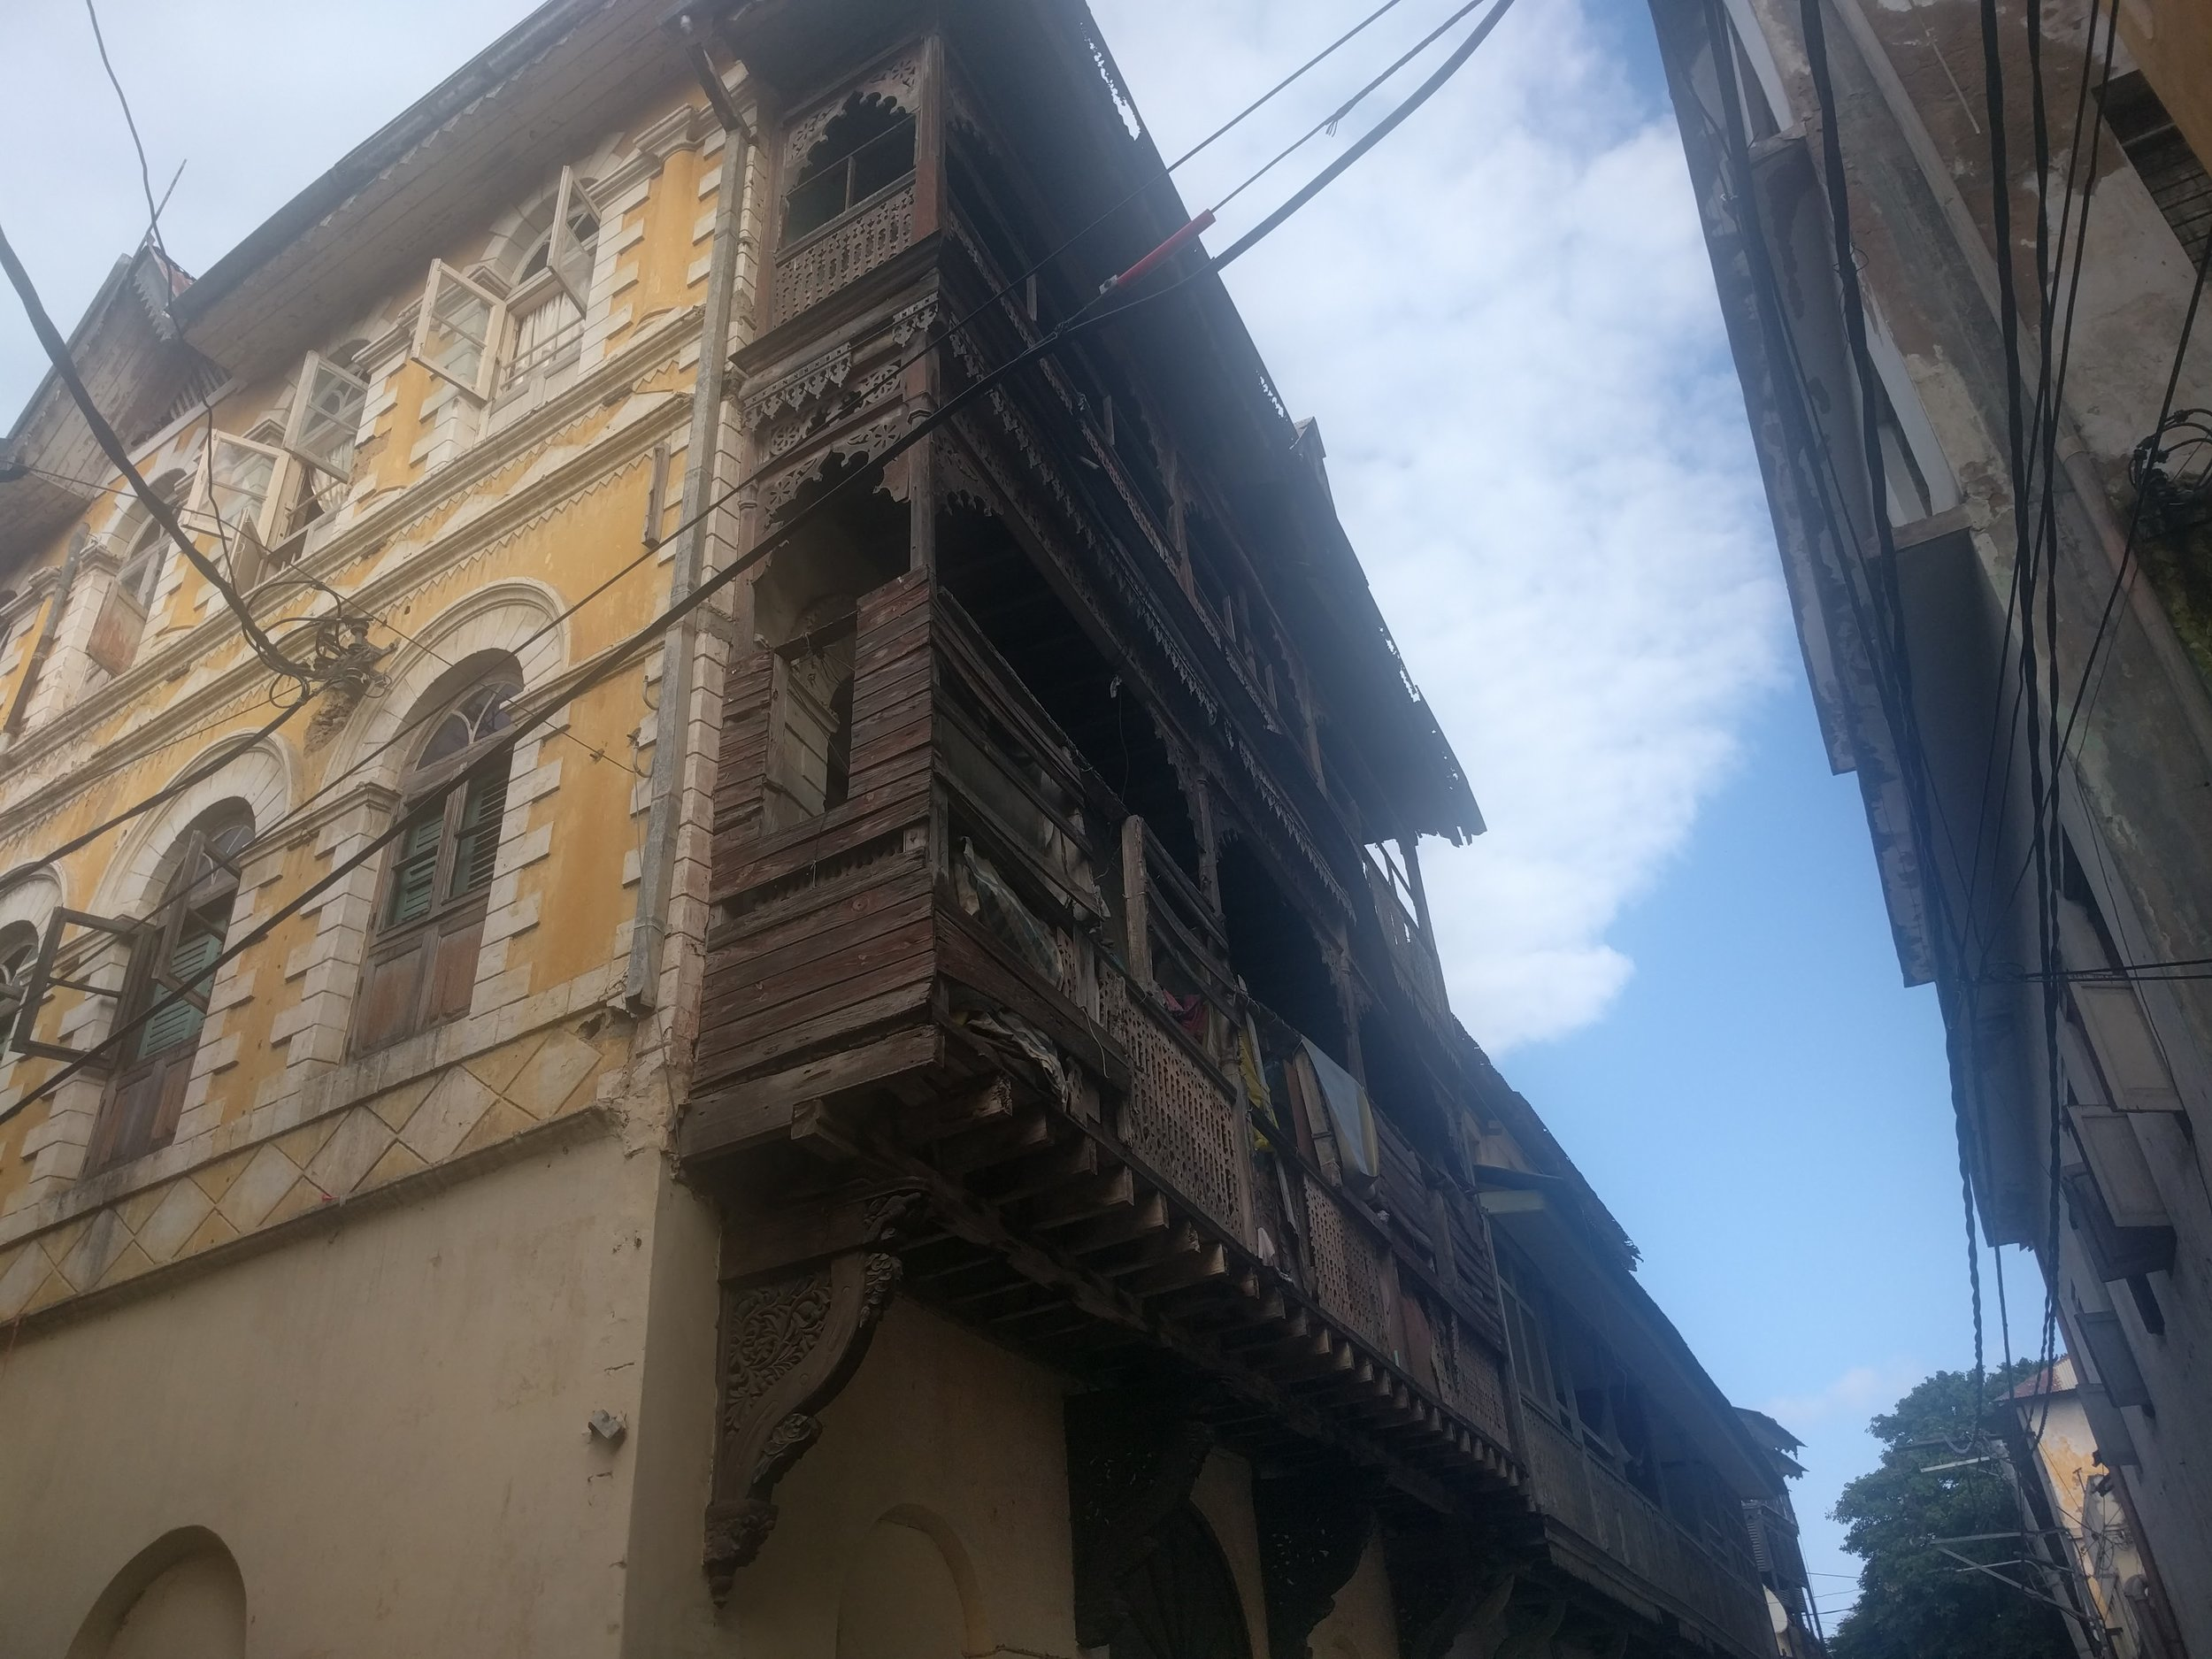 Mombasa was full of ancient buildings reminiscent of when it was a Portuguese colony. You'll feel like Indiana Jones walking through a lost city here.